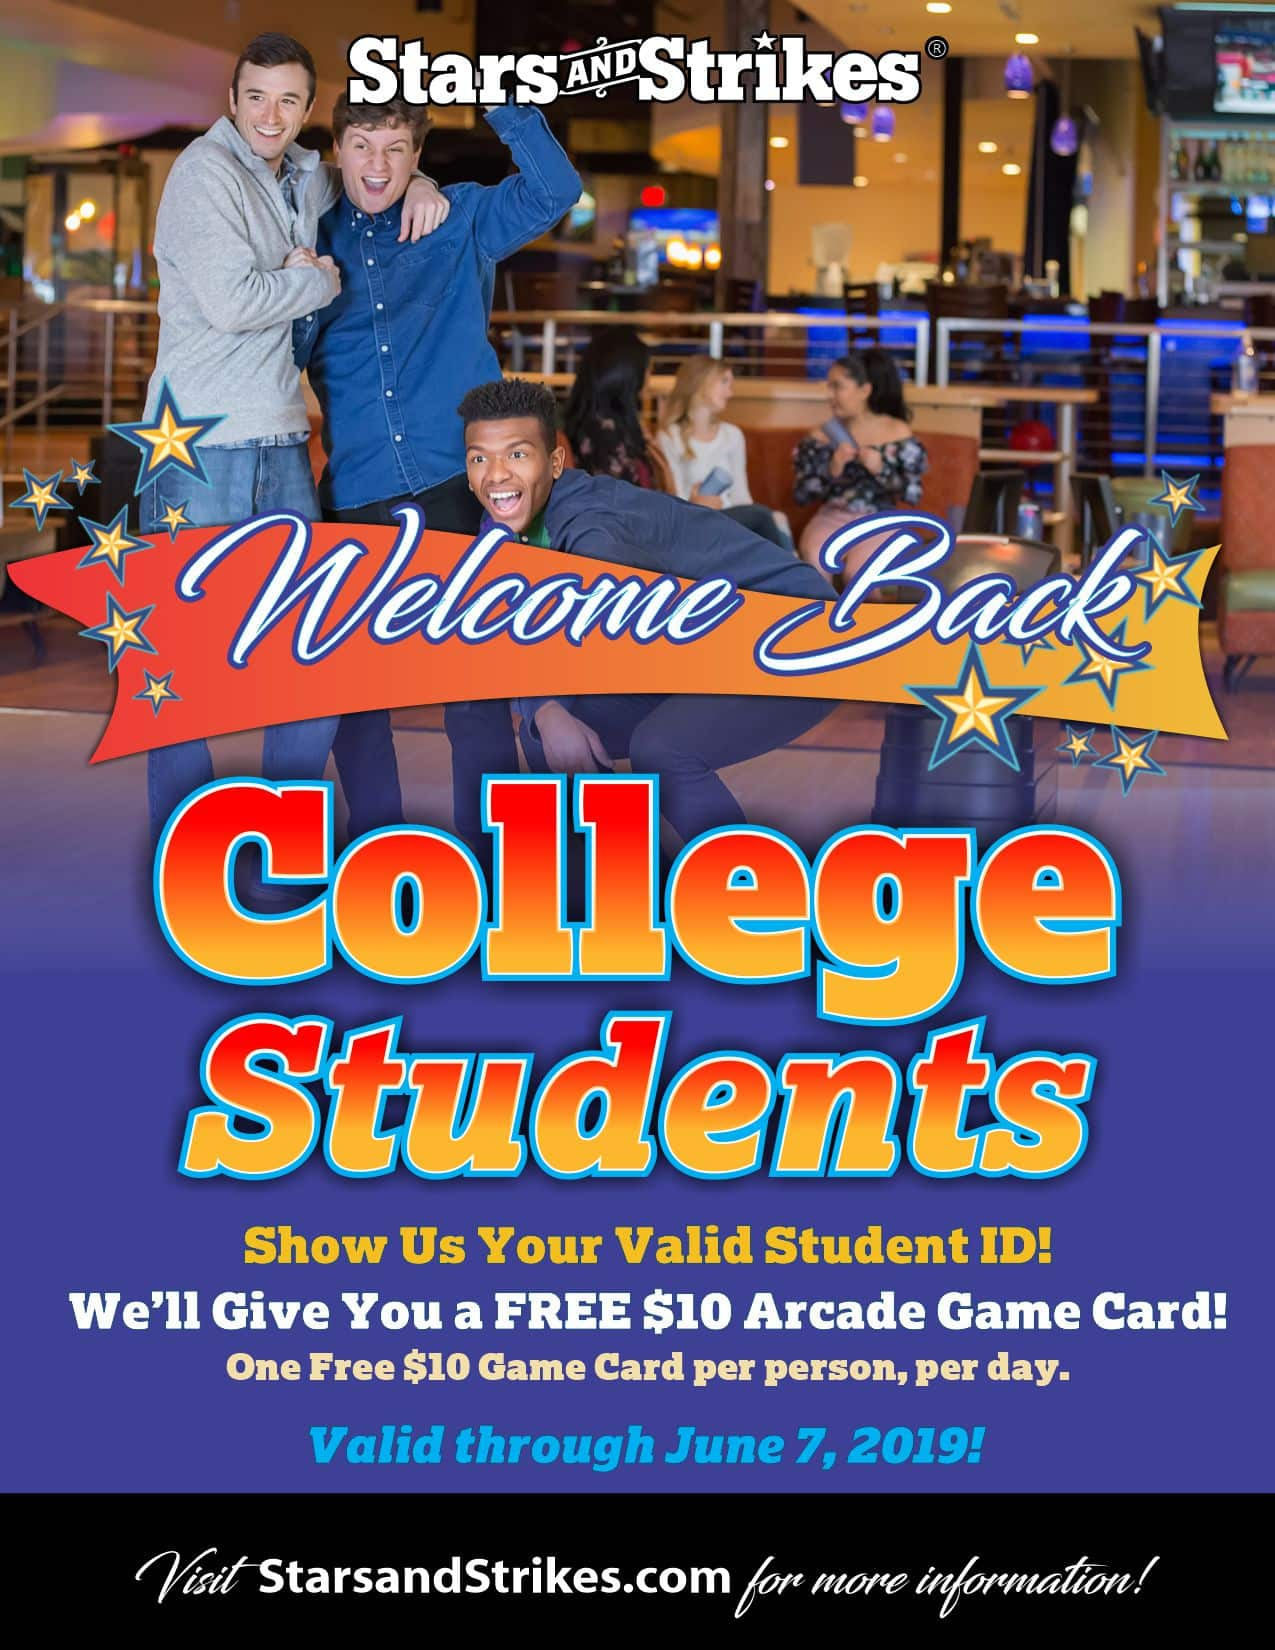 Stars & Strikes: College Students - Free $10 Arcade Game Card, One free game card per person, per day